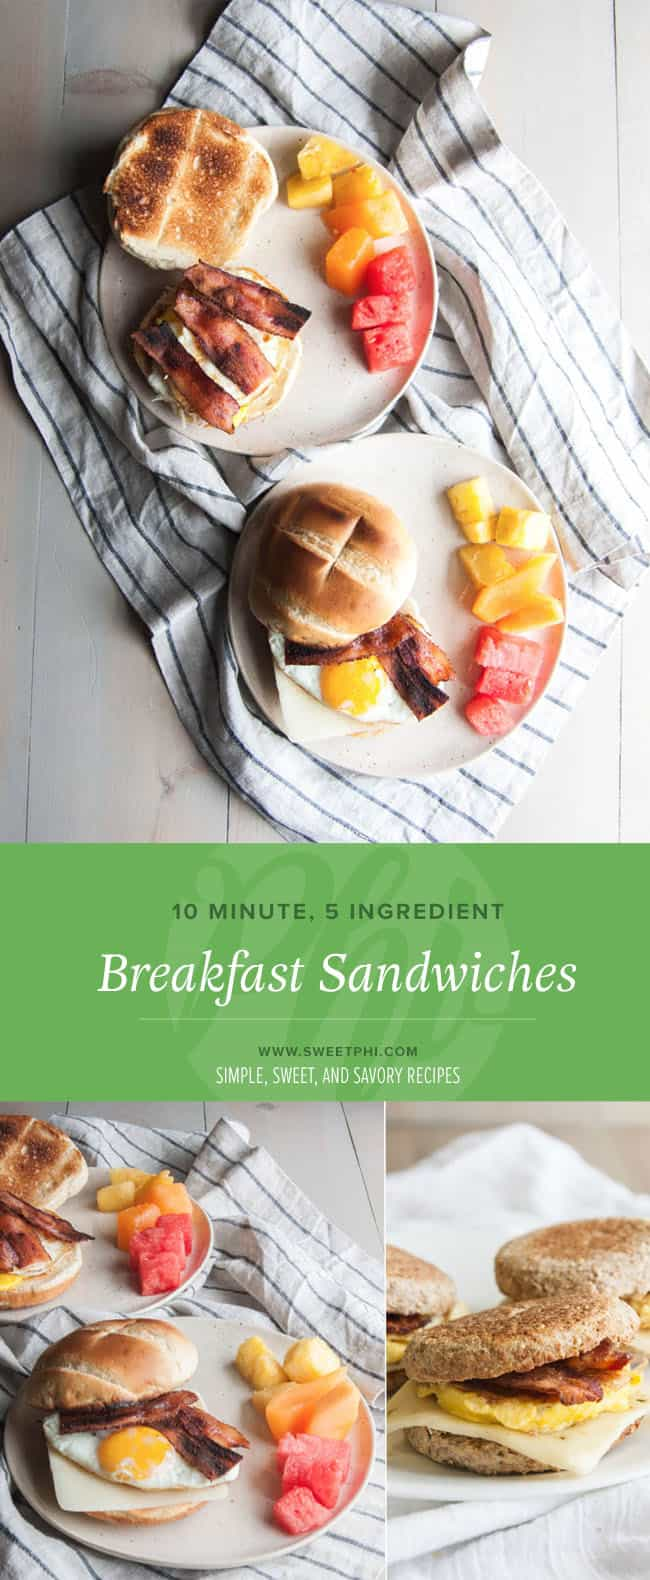 A quick and easy breakfast or brunch recipe for breakfast sandwiches